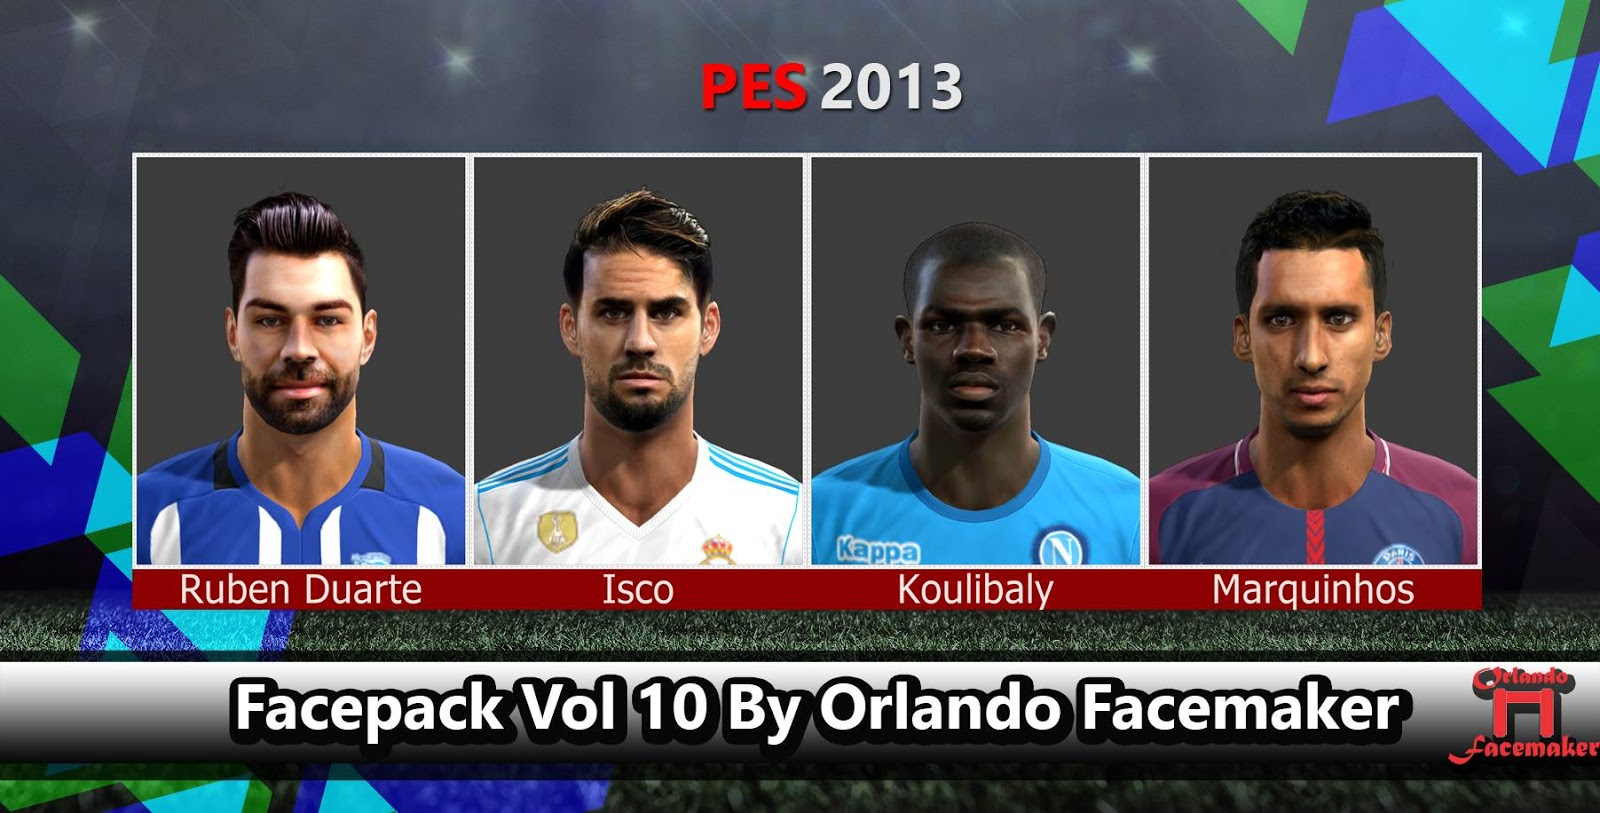 PES 2013 Facepack Vol 10 By Orlando Facemaker